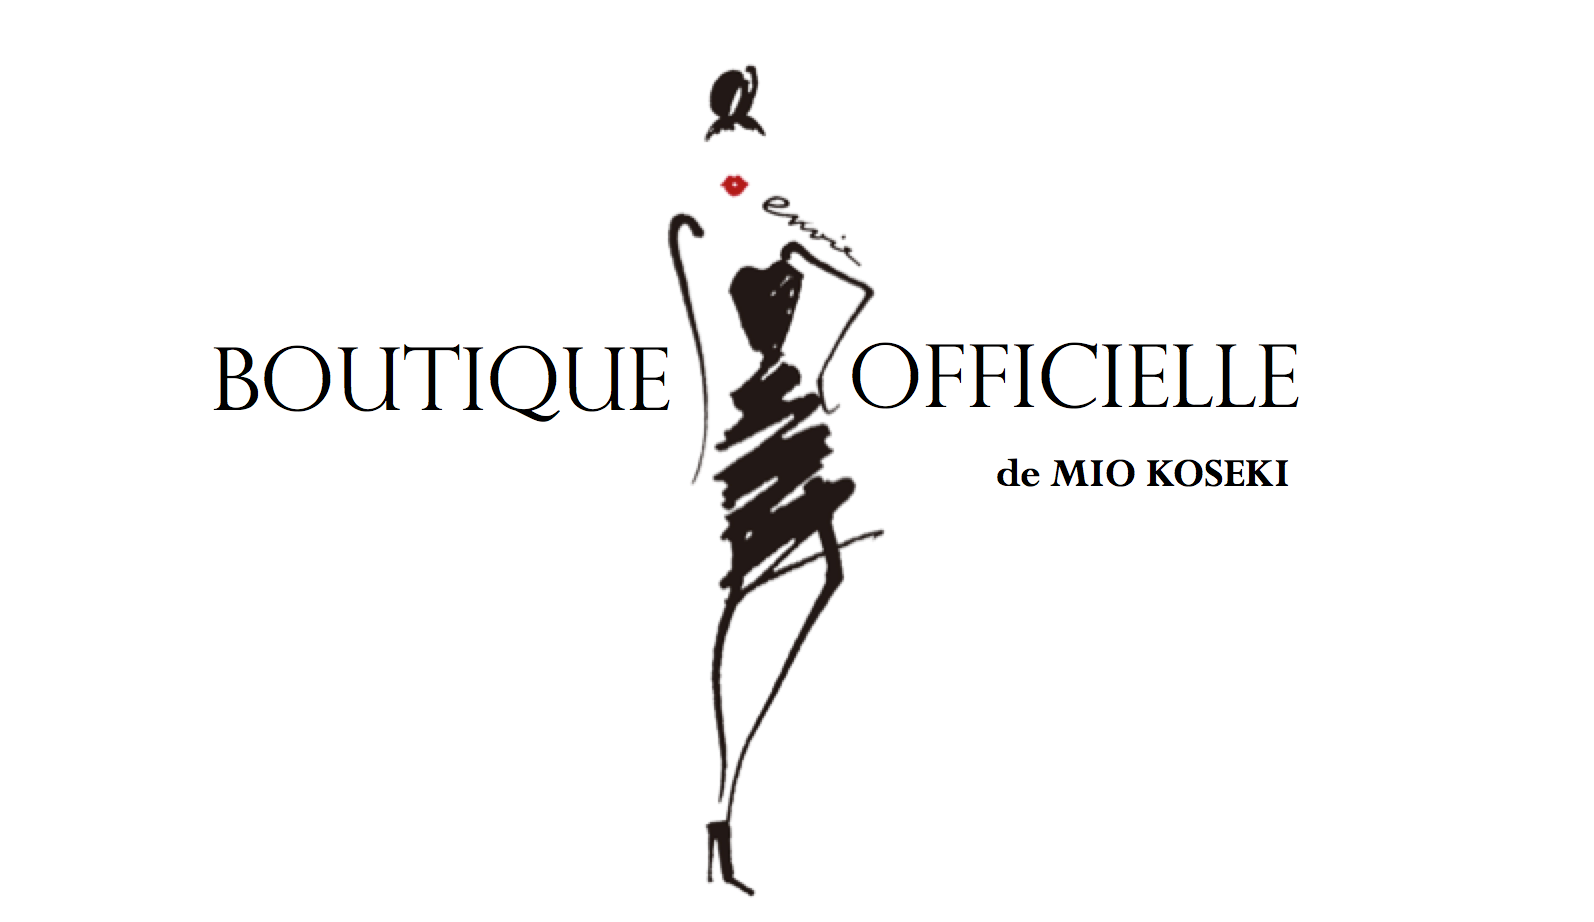 Boutique Officielle de MIO KOSEKI